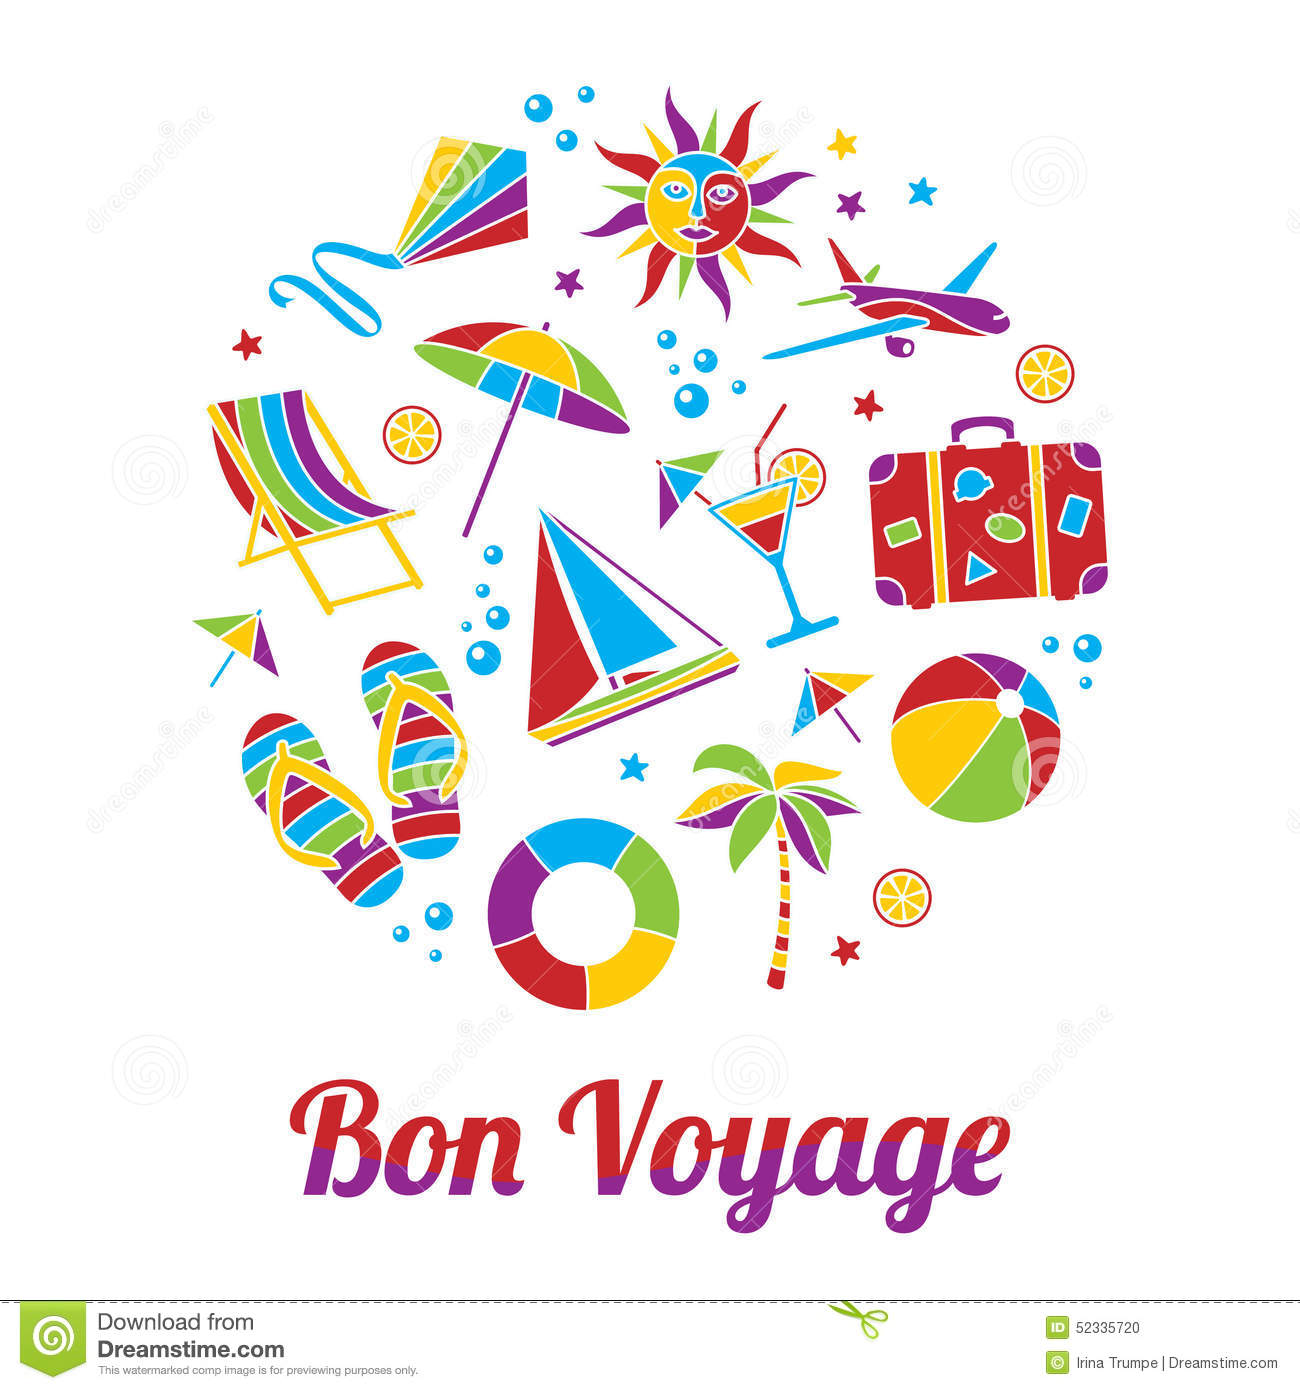 Vacation illustration with Bon Voyage headline in flat mosaic style.